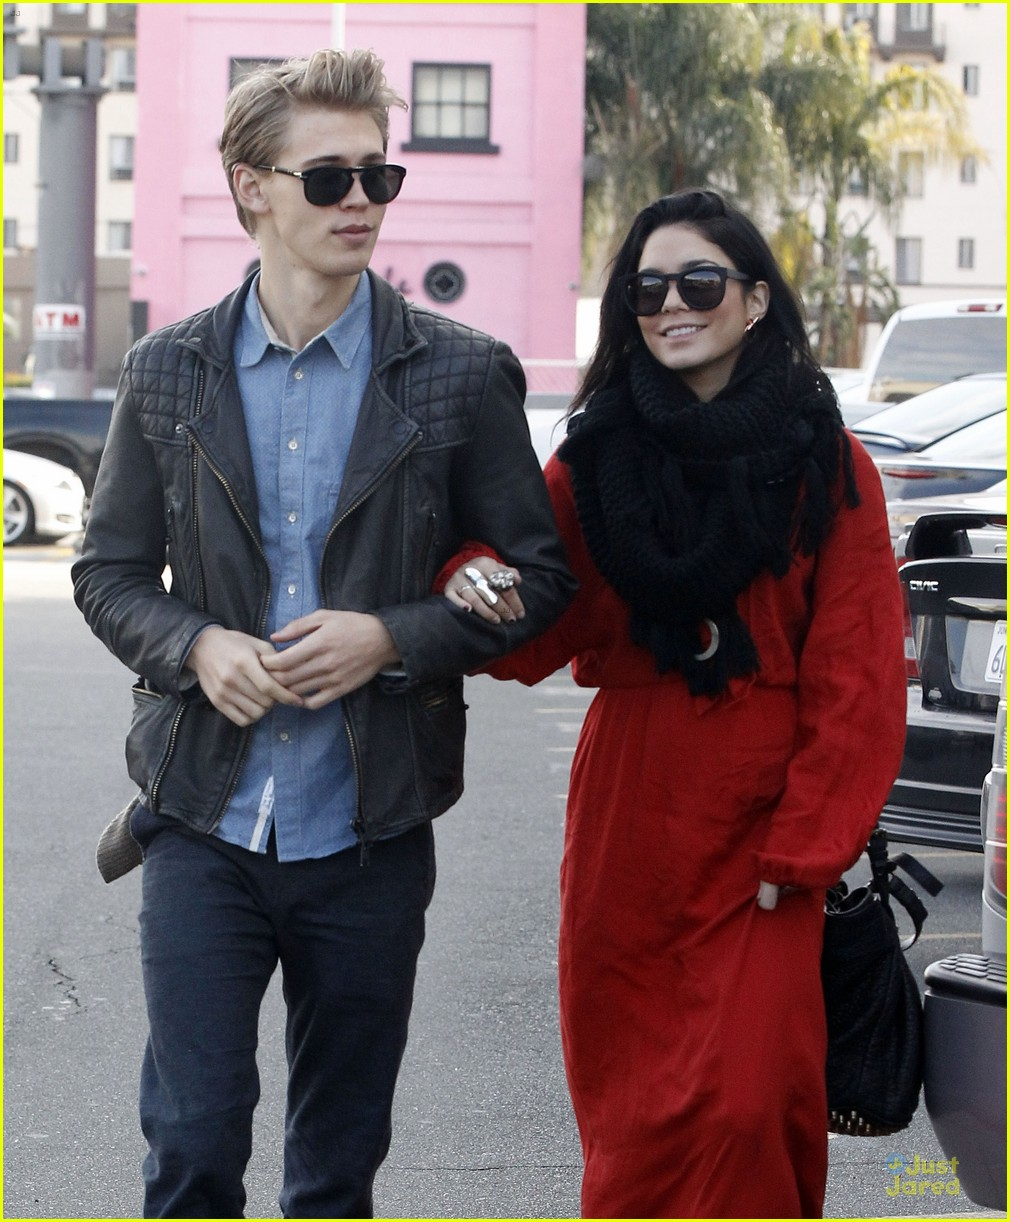 vanessa hudgens & austin butler church going couple 06